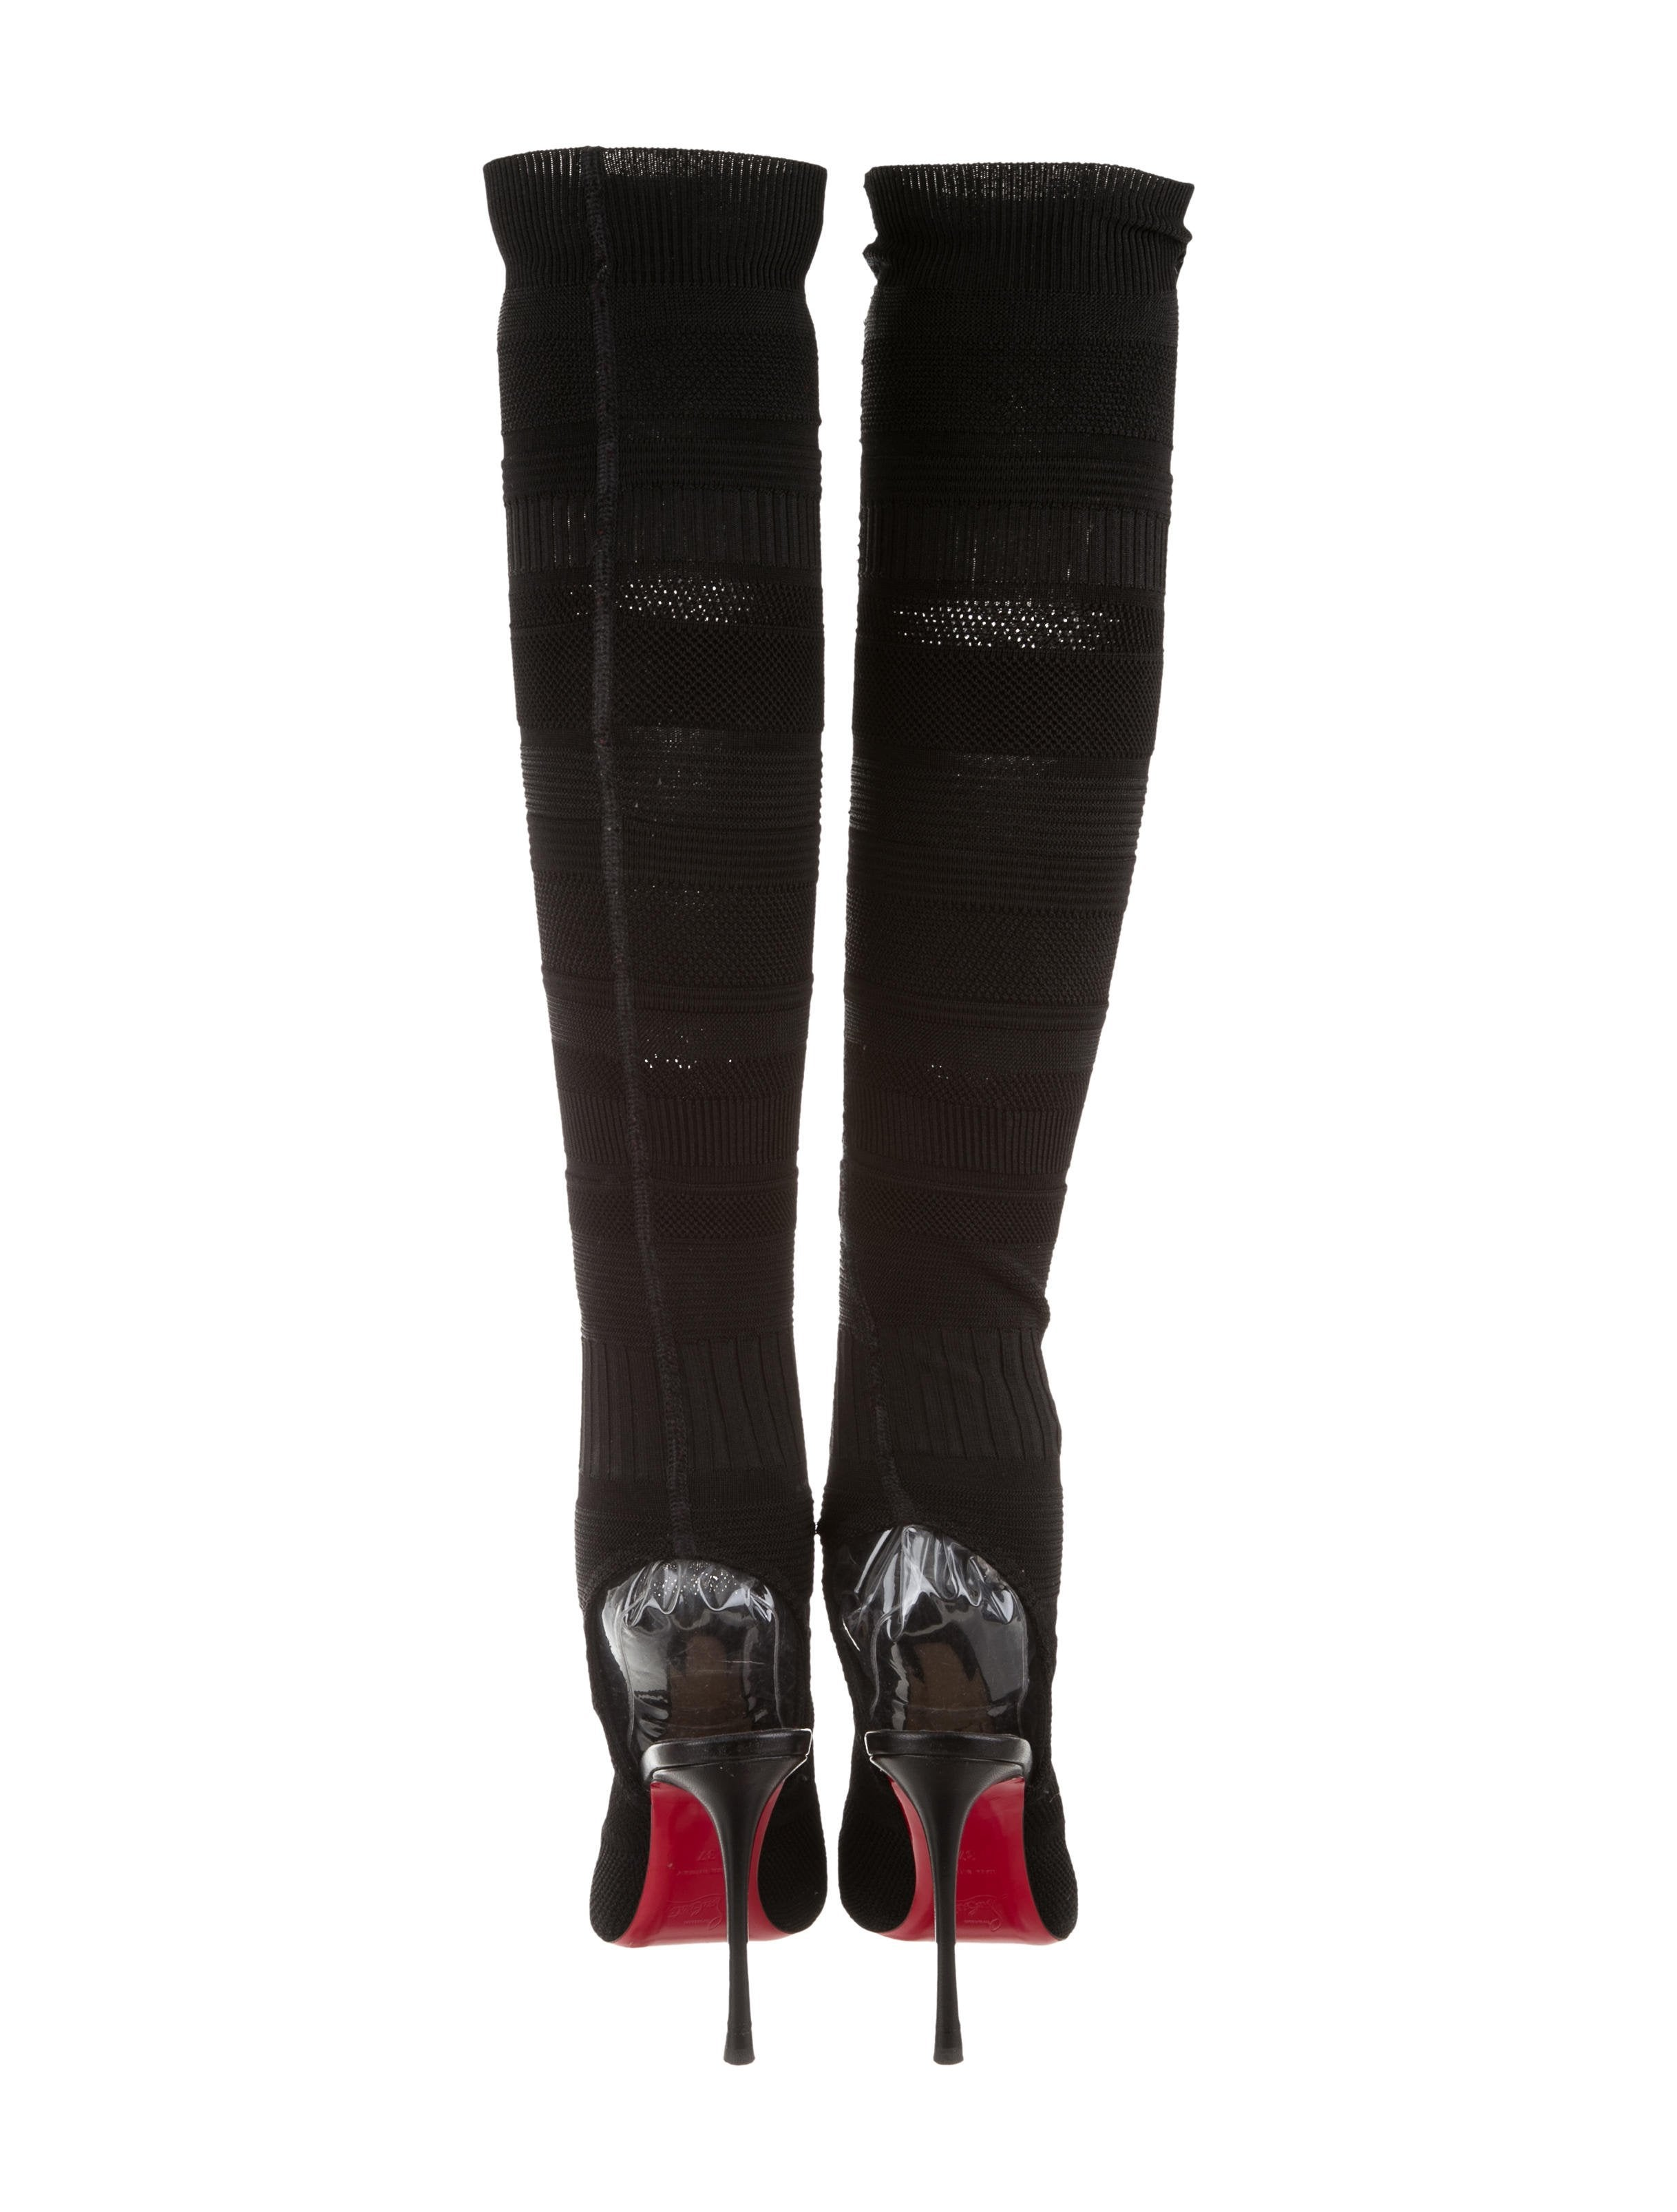 Christian Louboutin Kristy Over The Knee Boots Shoes